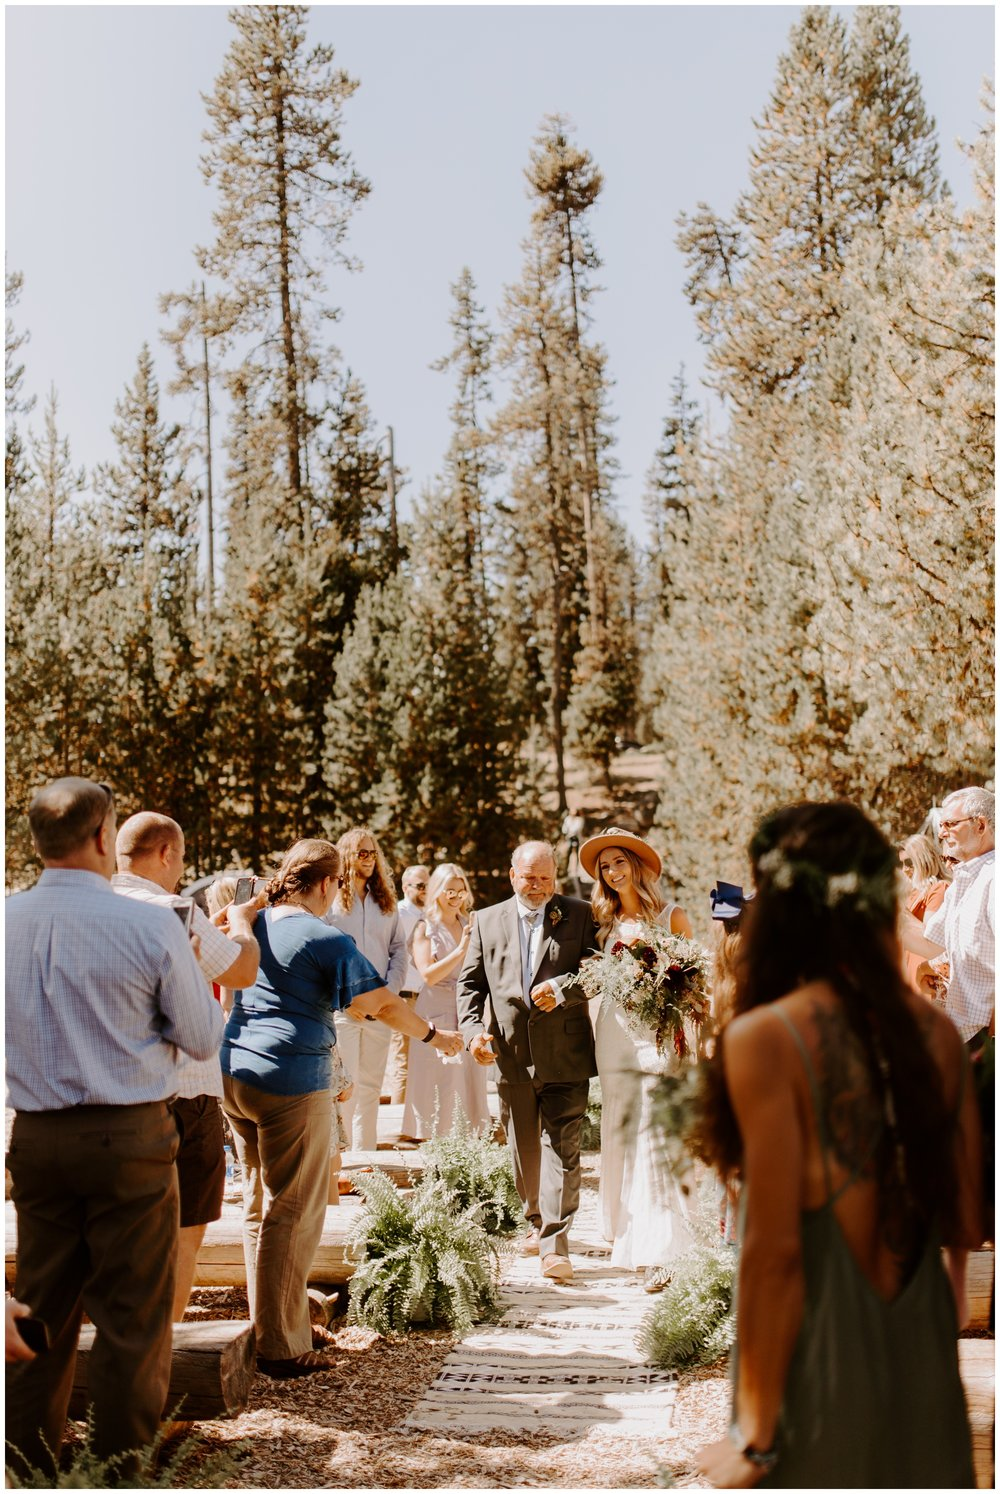 Bend Boho Campsite Wedding Eastern Oregon - Jessica Heron Images_0035.jpg